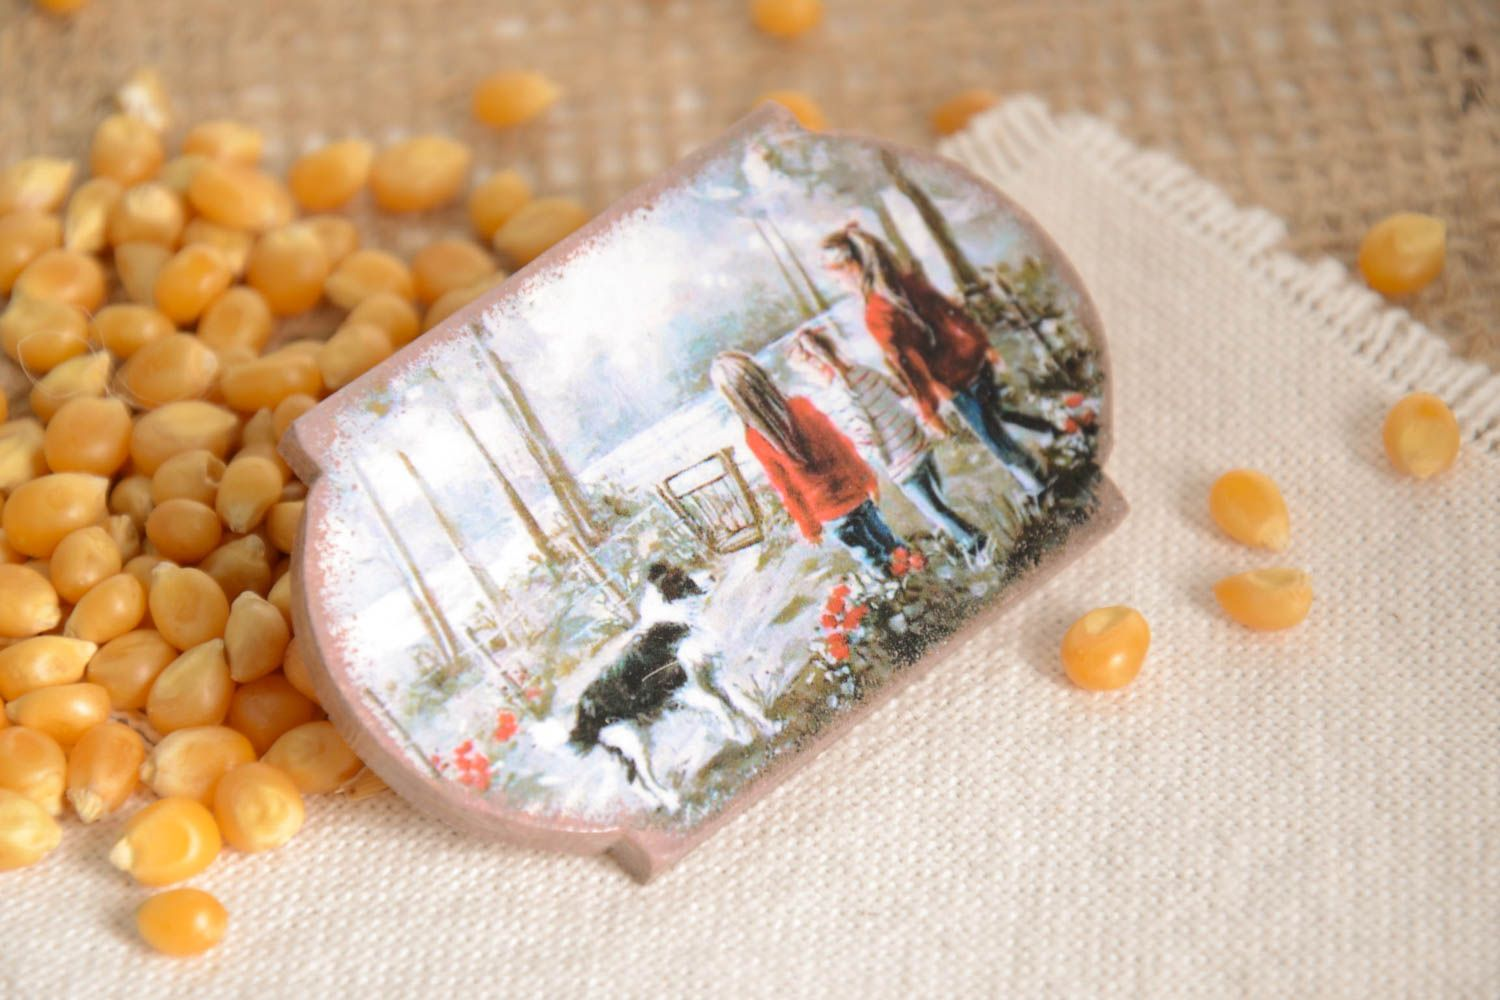 Unusual handmade magnet kitchen supplies decoupage ideas decorative use only photo 1